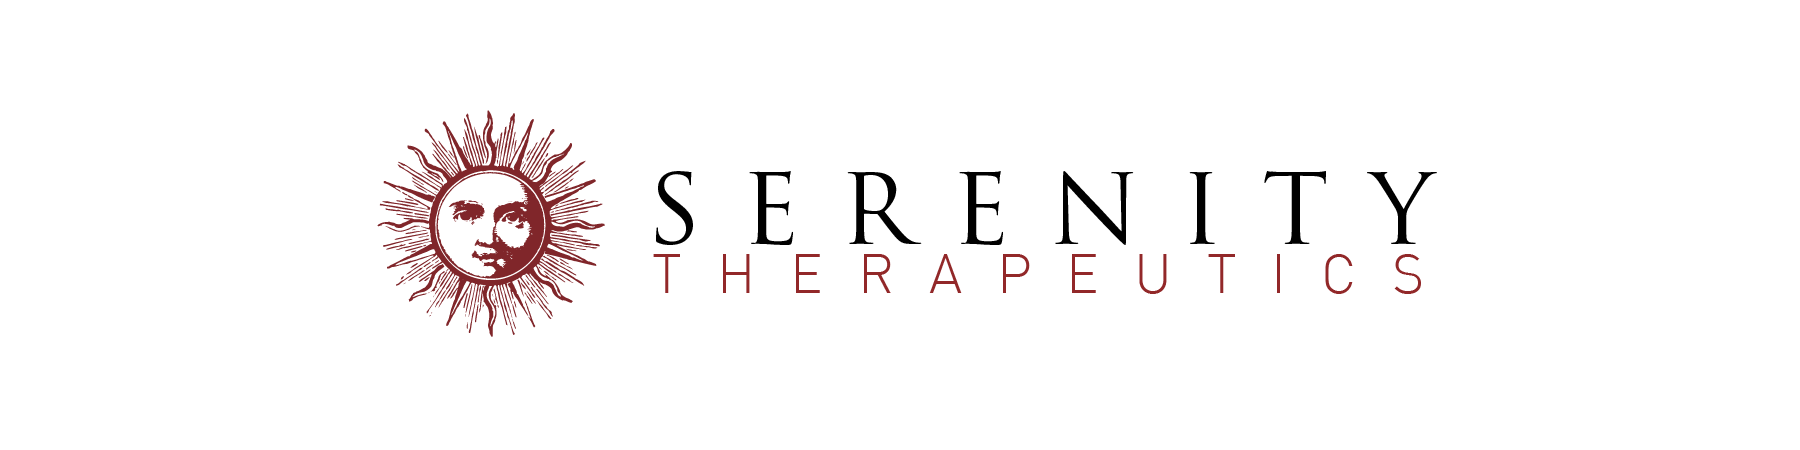 Serenity Therapeutics logo